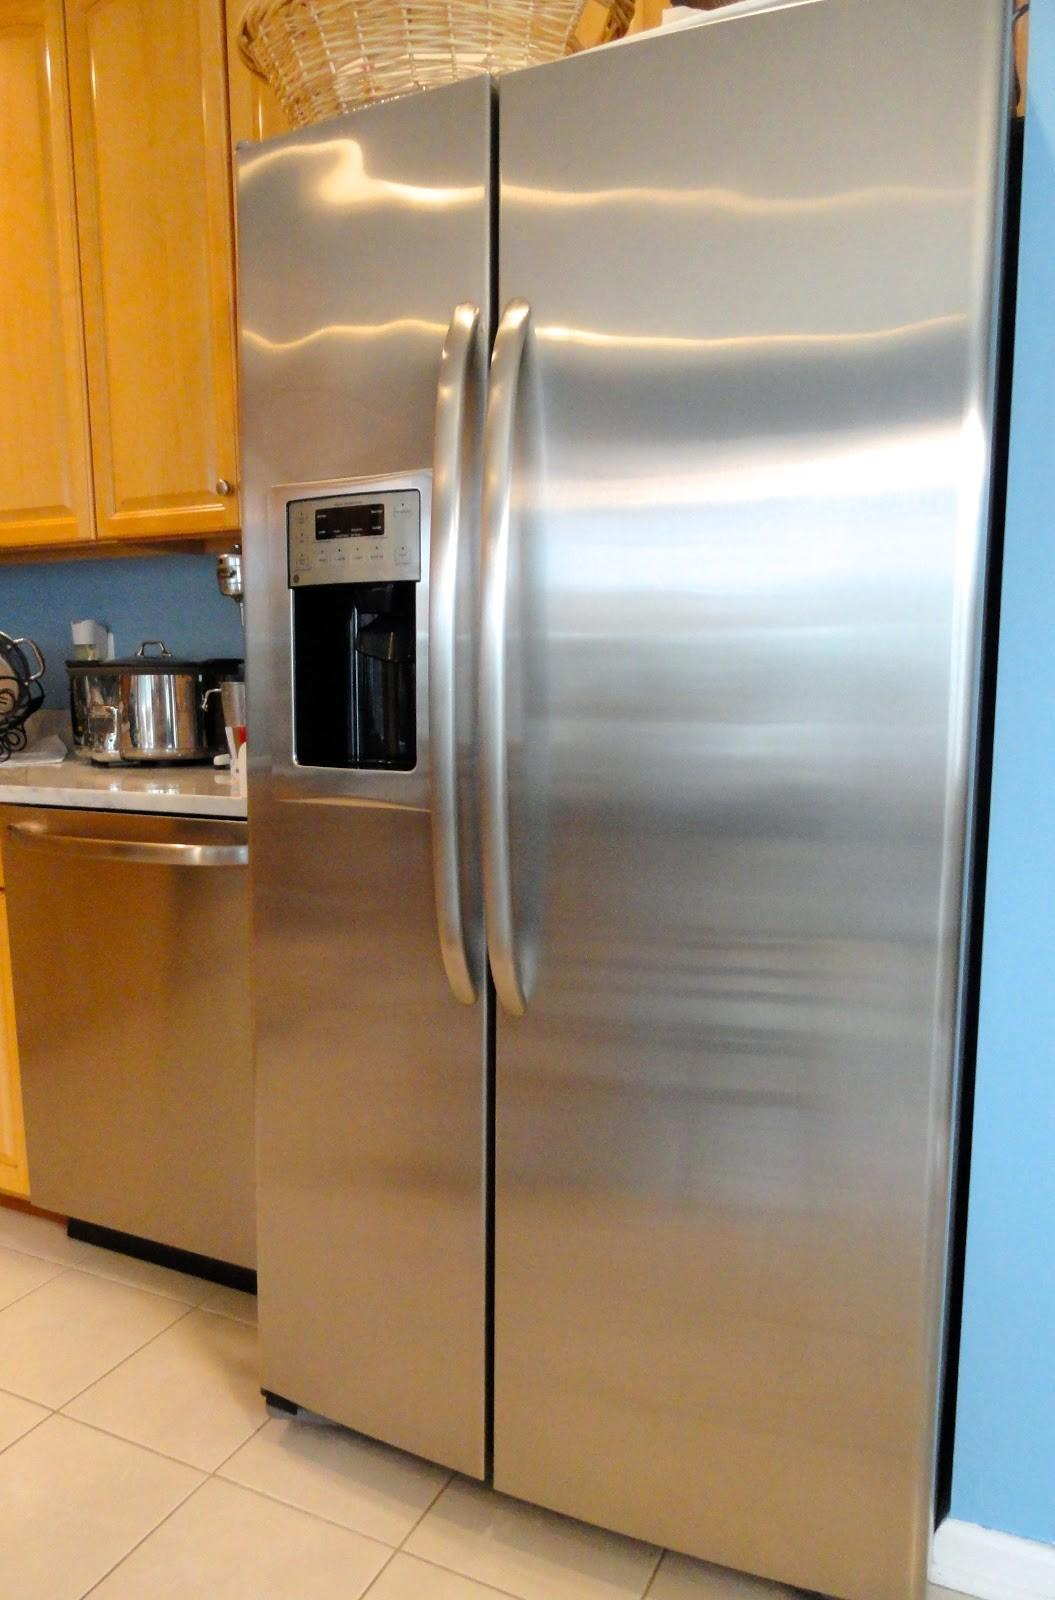 Rachel Nest Cleaning Stainless Steel Appliances Naturally